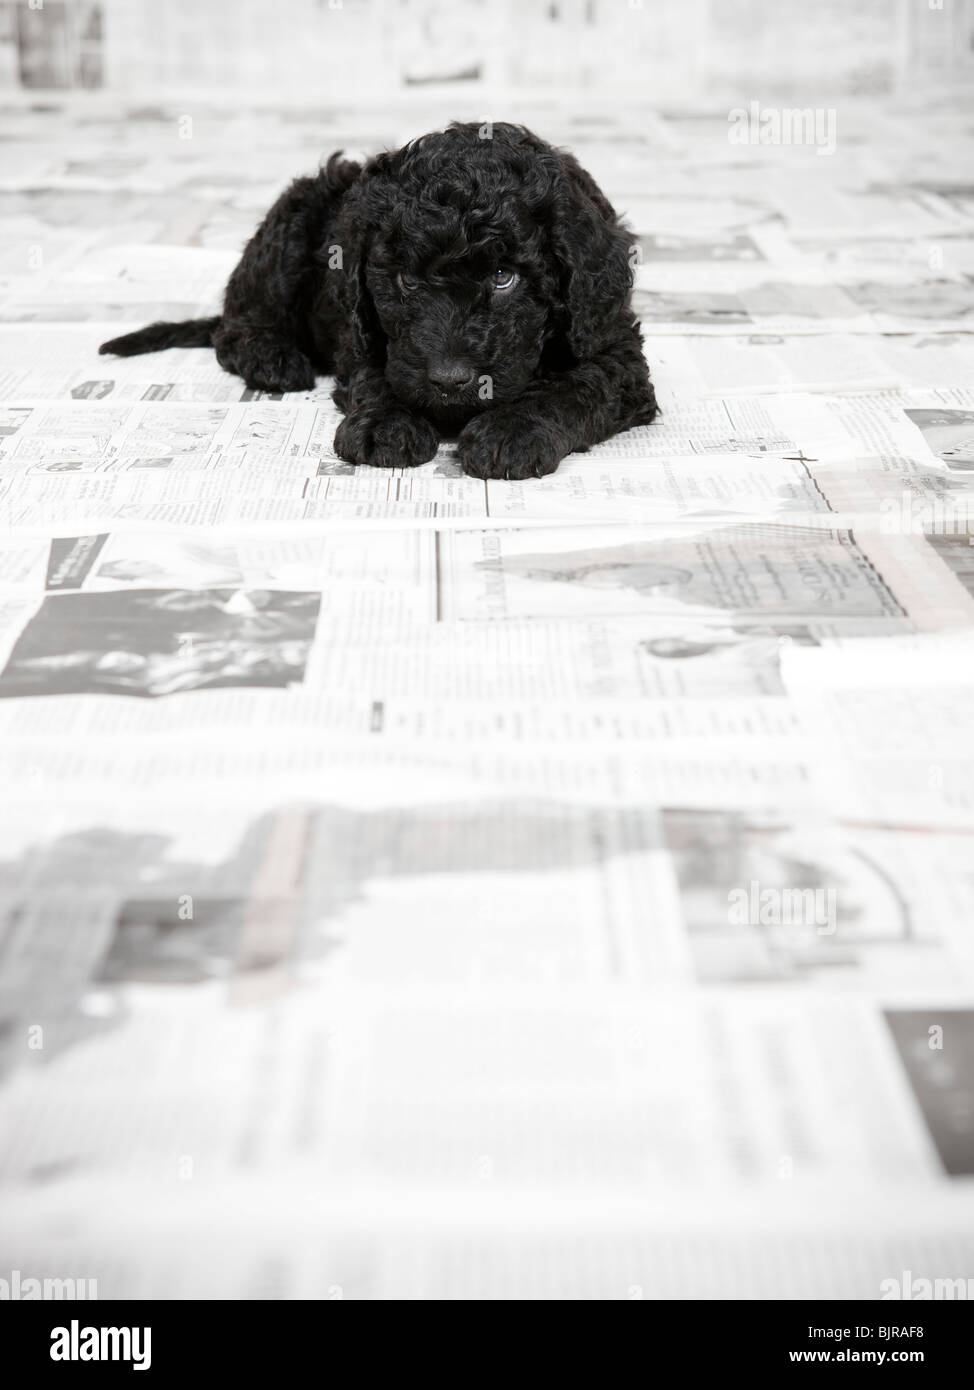 Portuguese Water Dog puppy lying in a room covered in newspaper - Stock Image